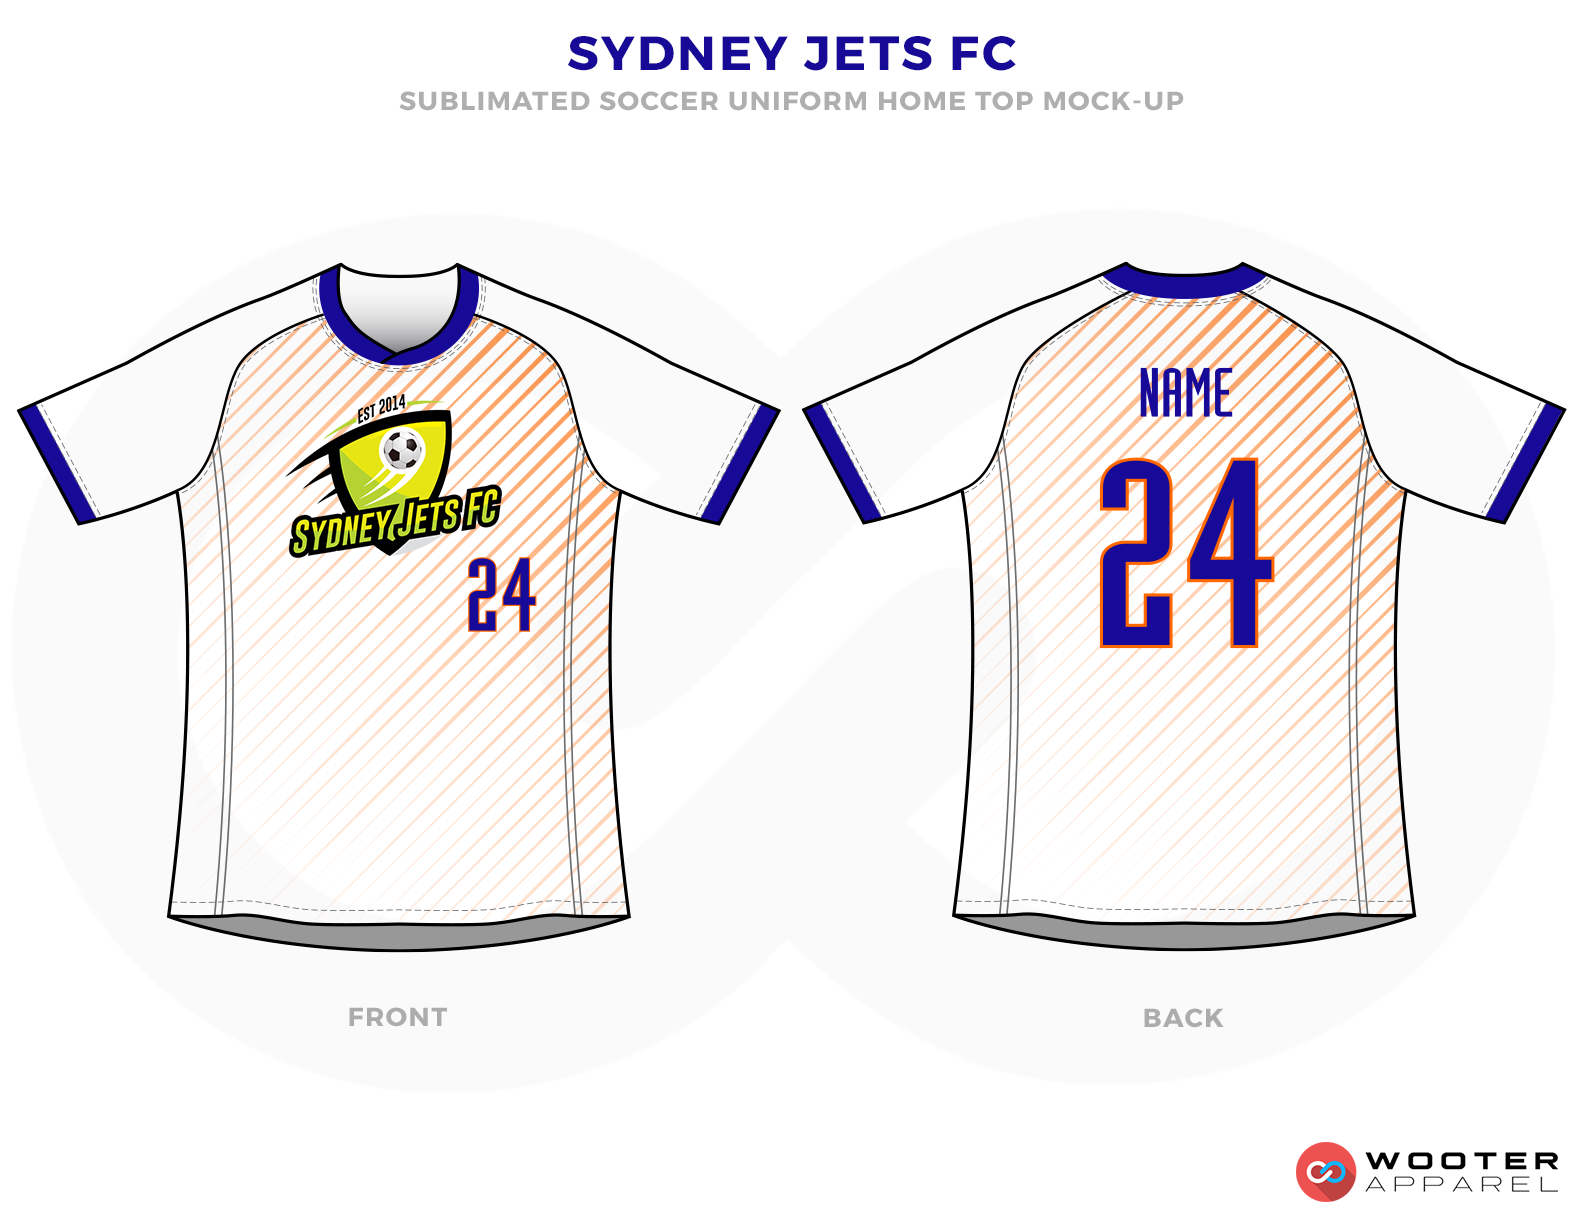 Sydney Jets FC Blue White and Orange Soccer Uniform, Jersey and Shorts